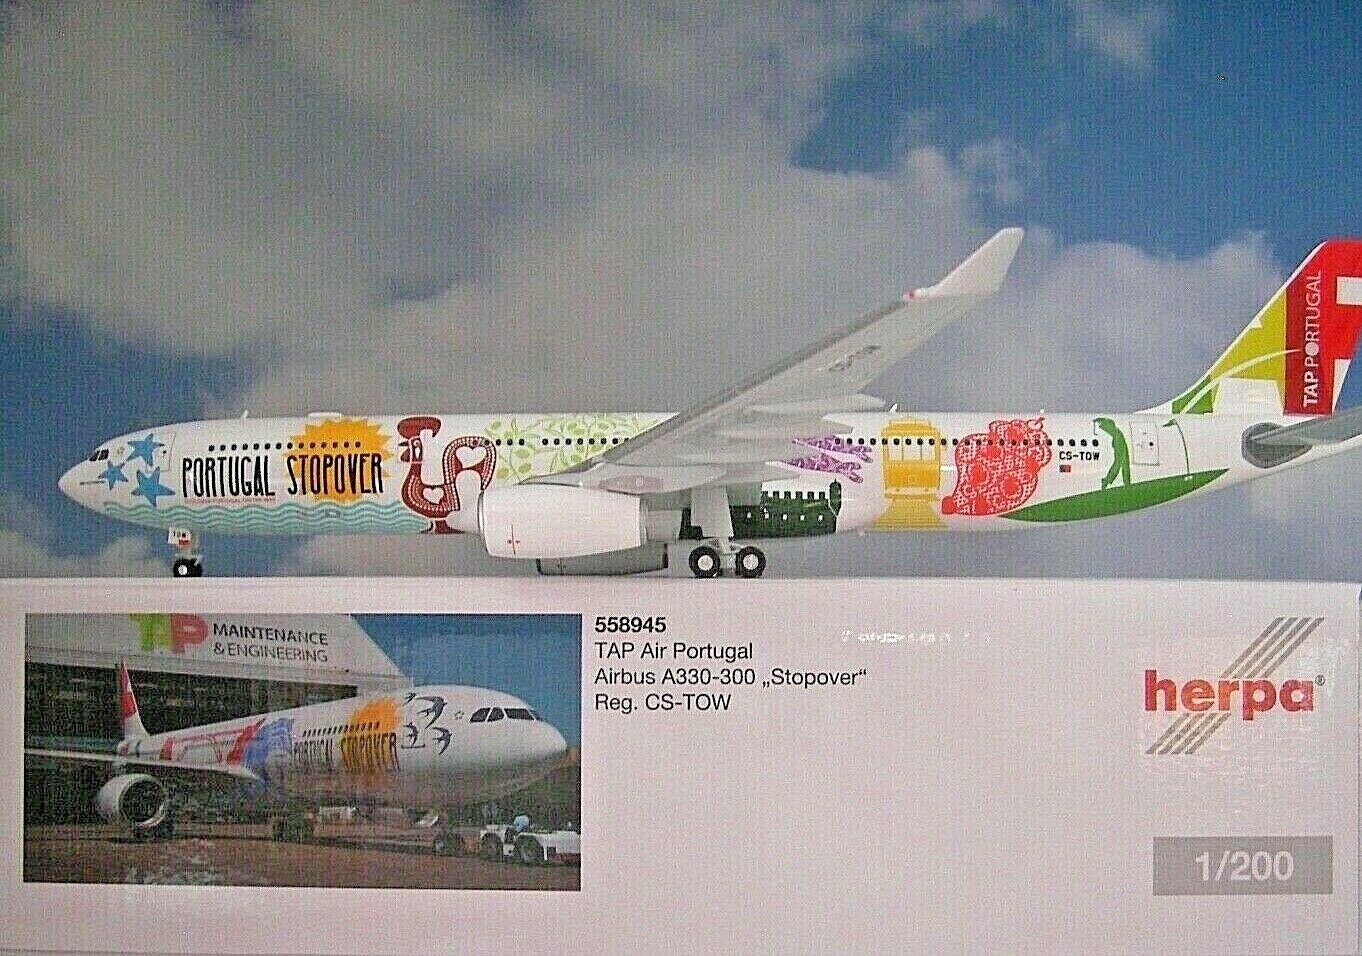 Herpa Wings 1 200 Airbus a330 300 TAP Portugal CS-Tow 558945